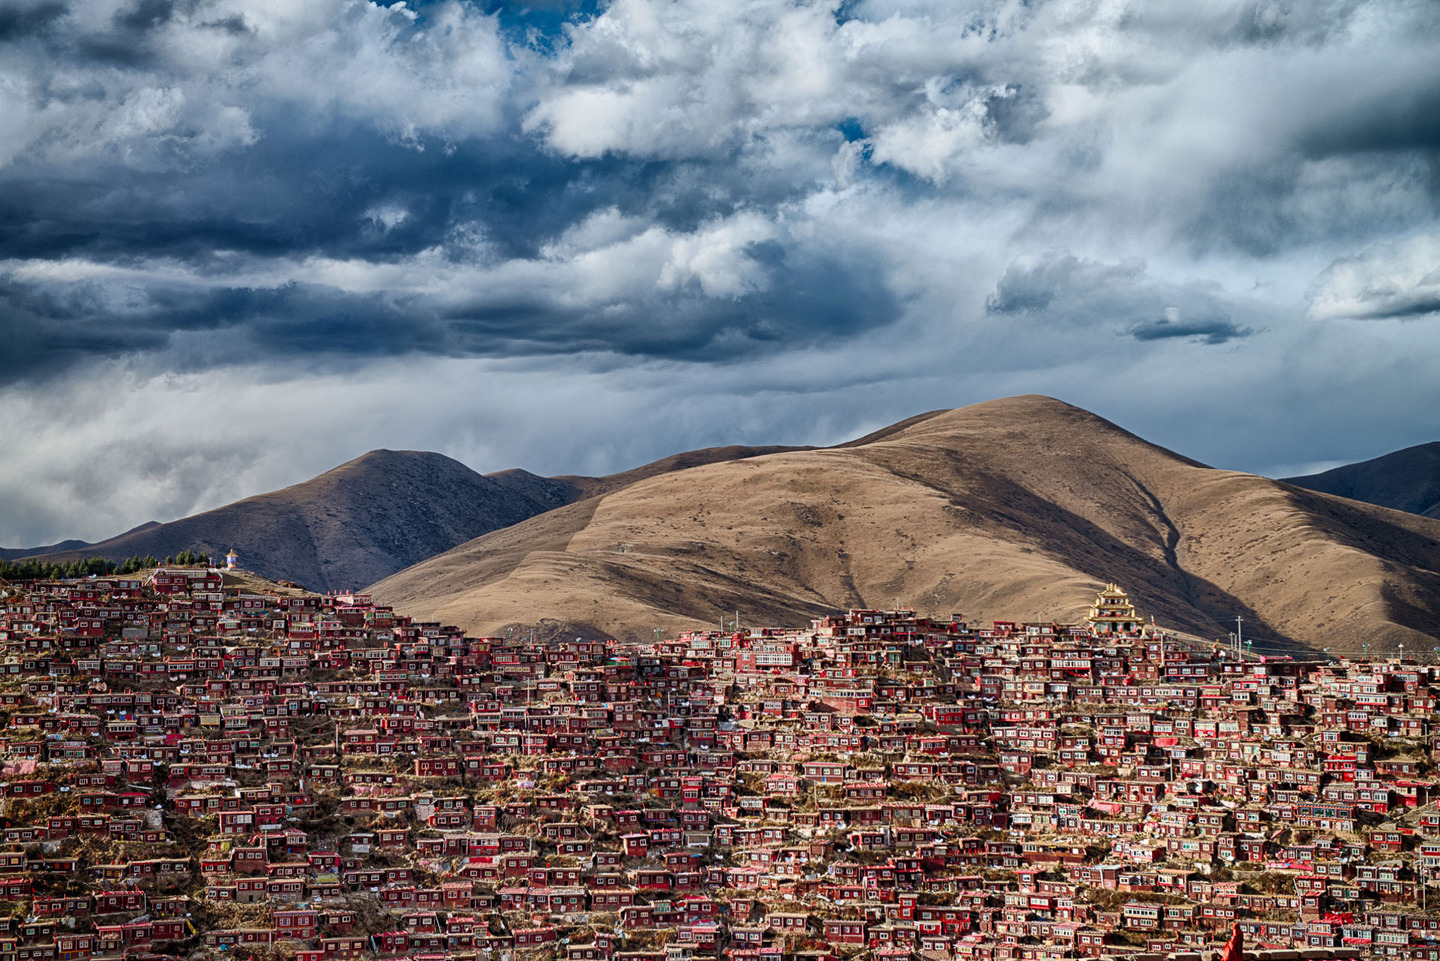 Home of 40 thousand Buddhist monks in Sichuan province